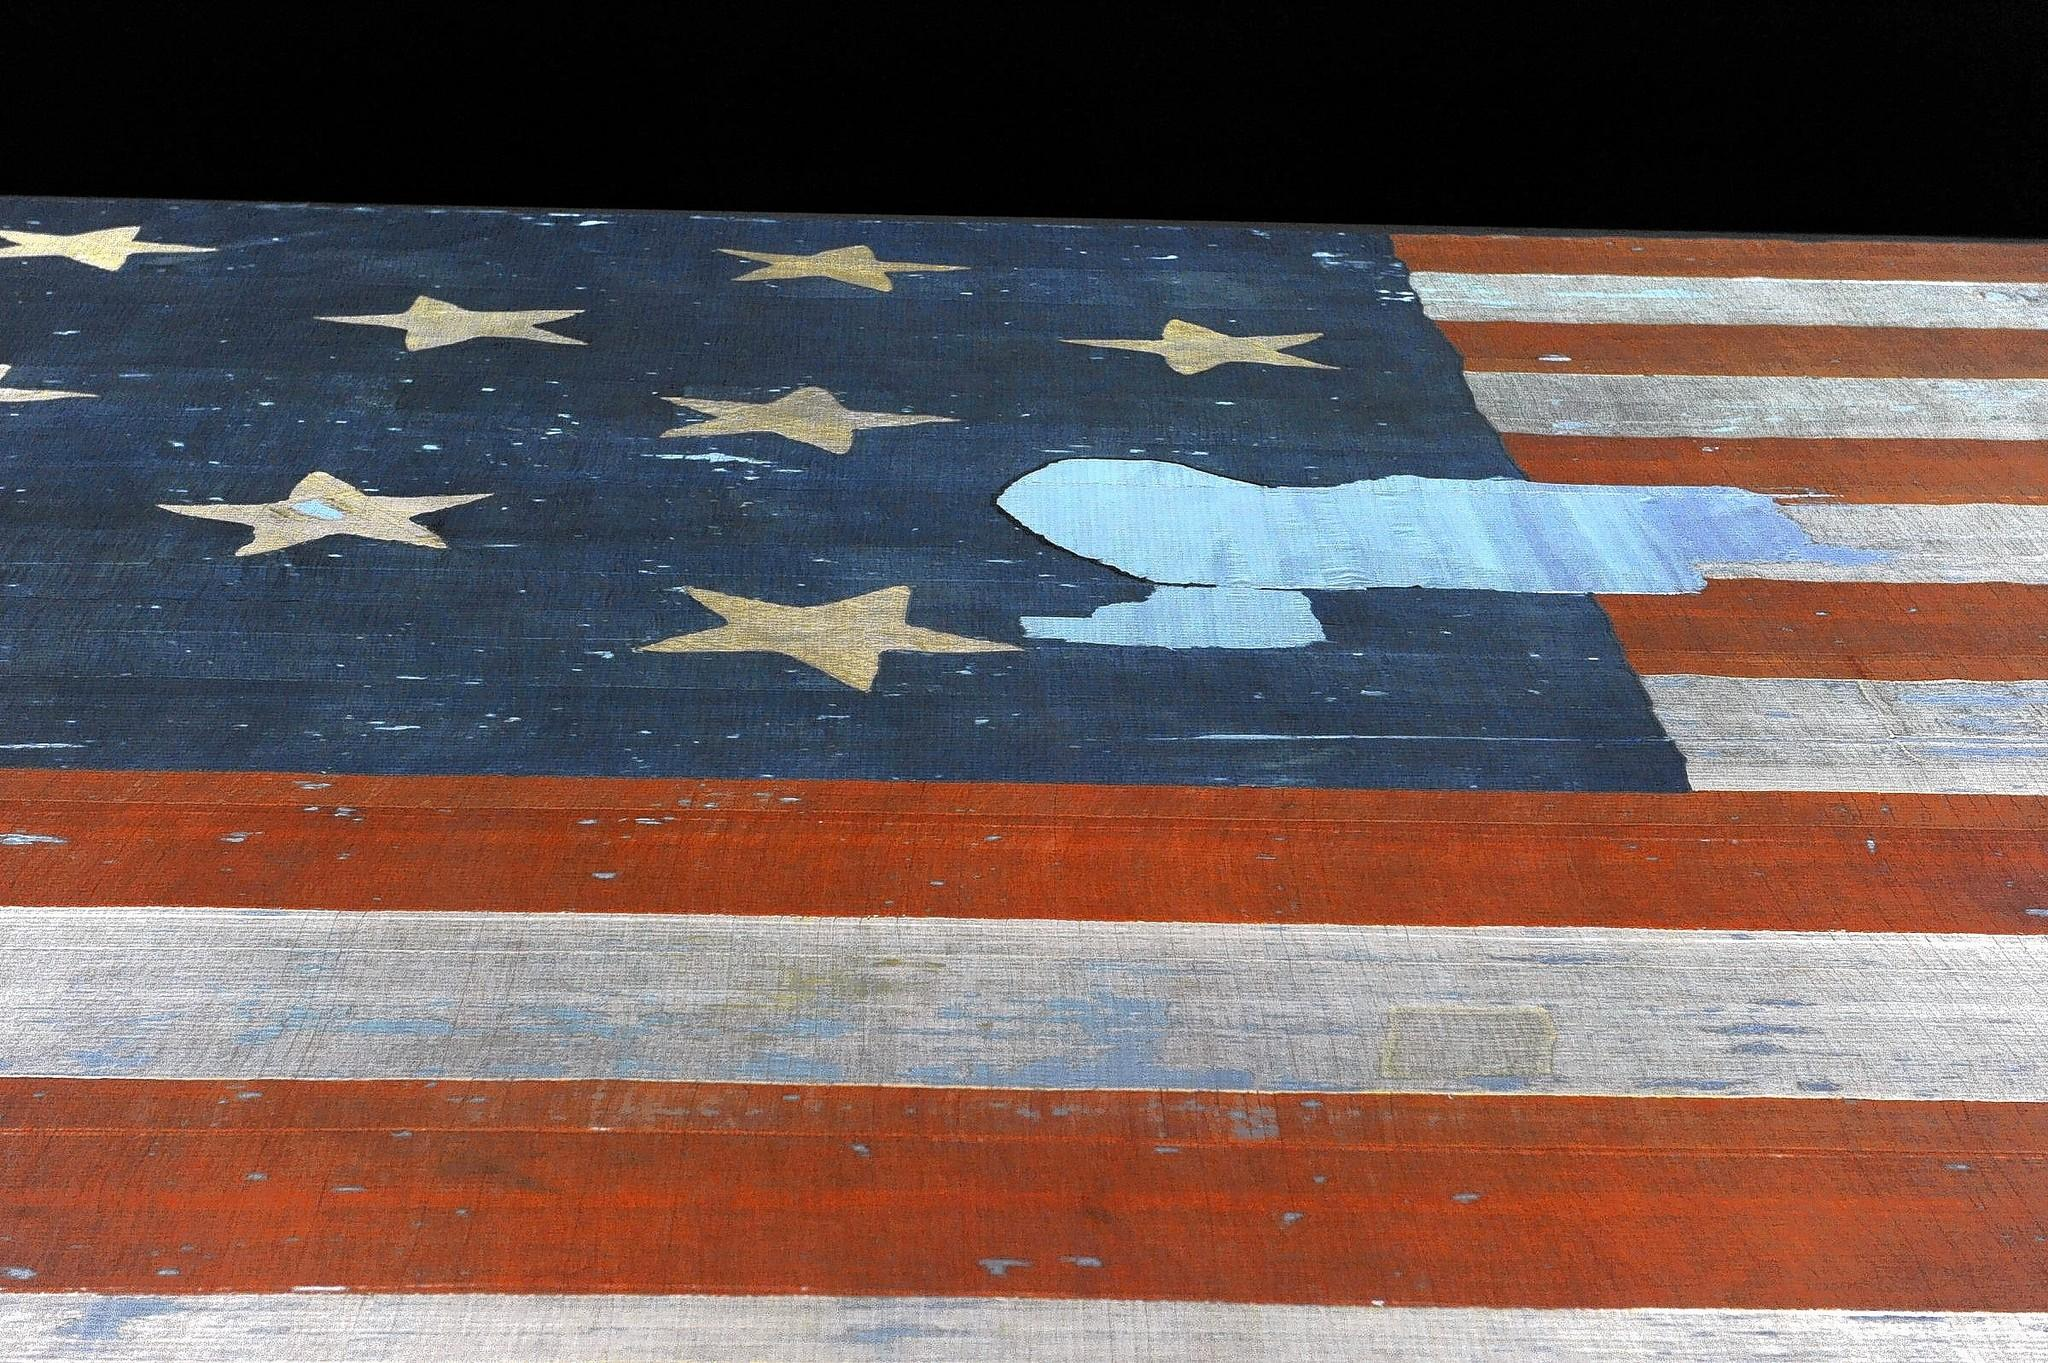 A star is missing from the flag that flew over Ft. McHenry during the bombardment of Baltimore.